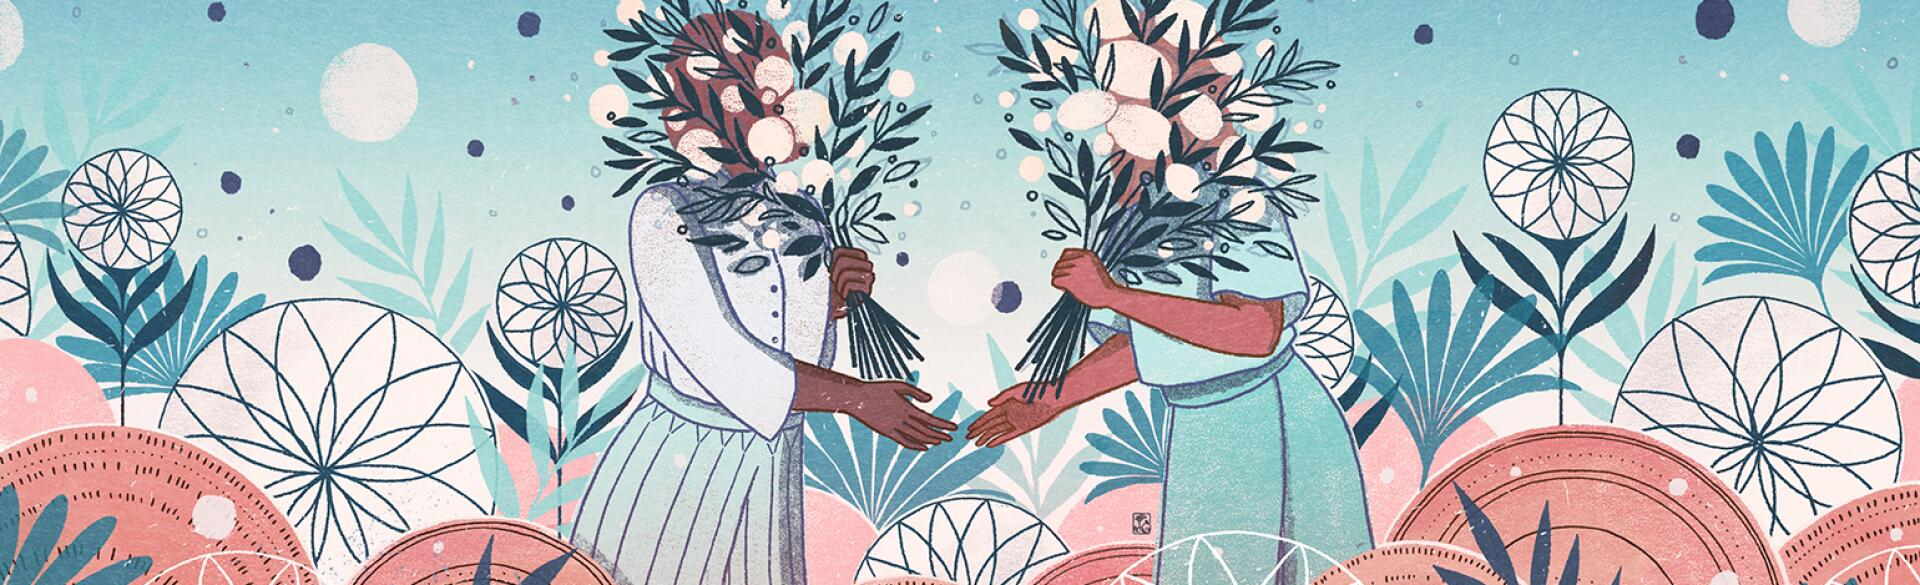 A graphic of two women about to shake hands as they meet with their faces covered by flowers.